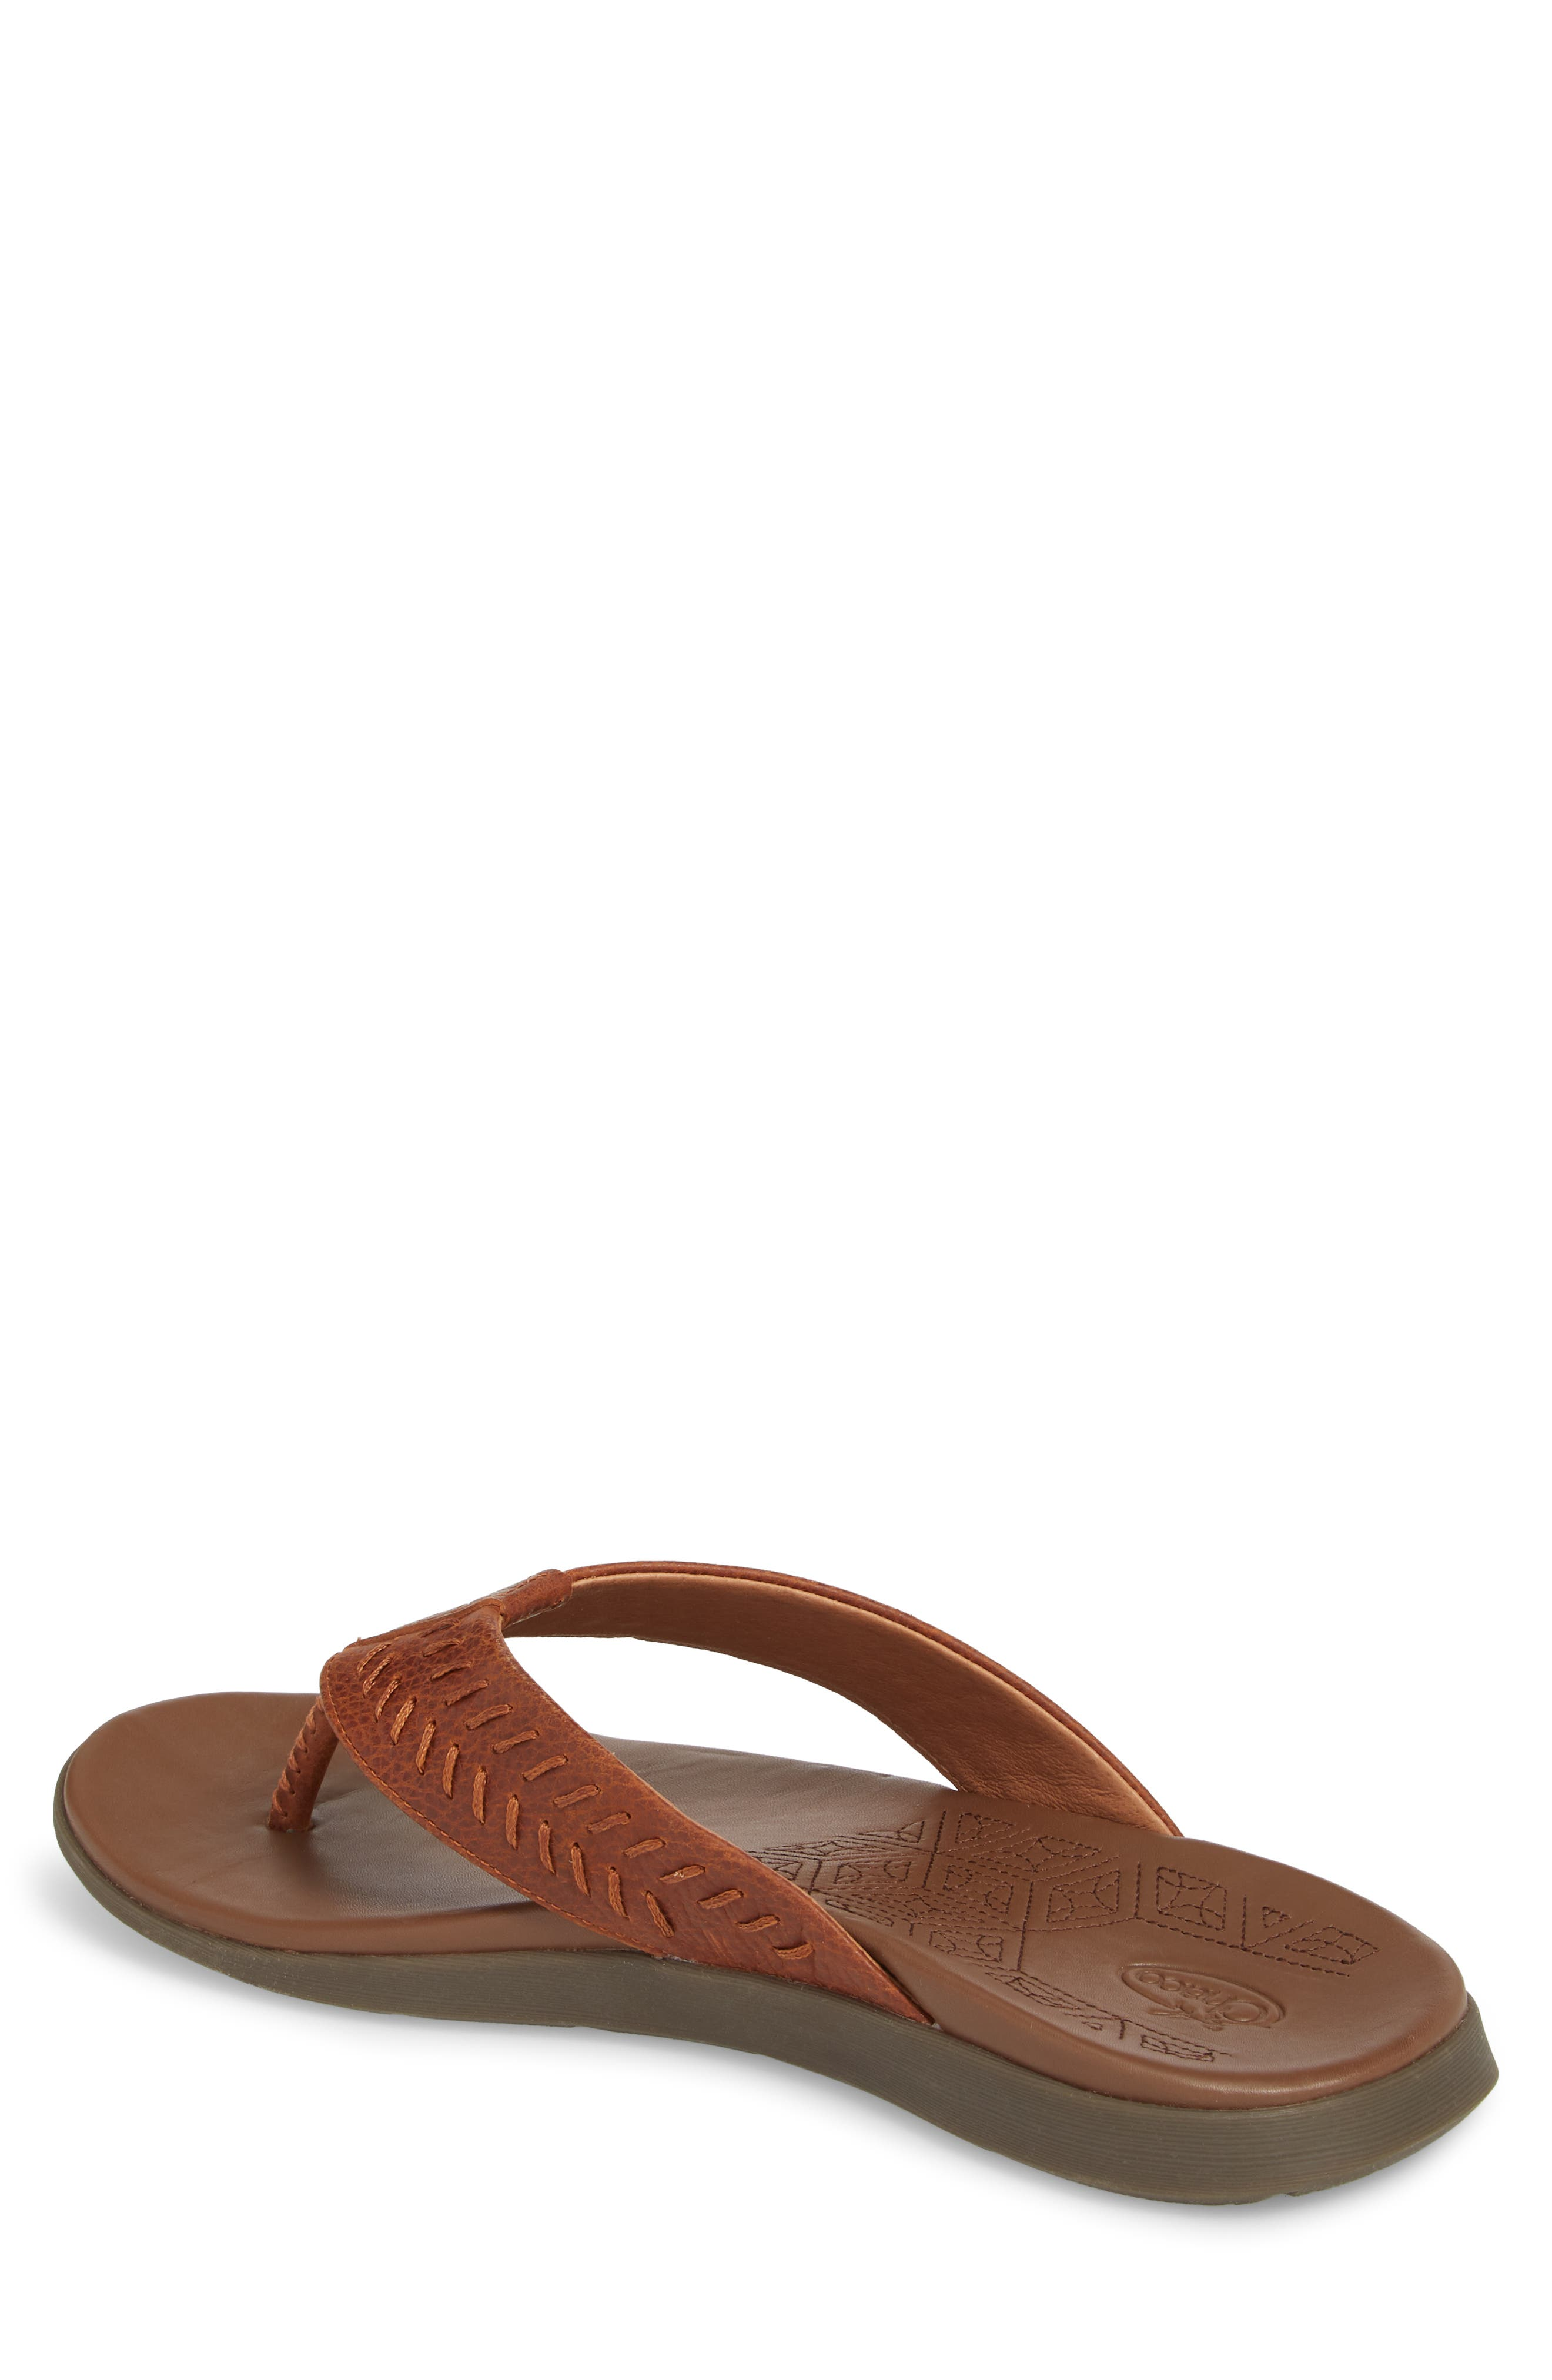 Alternate Image 2  - Chaco Jackson Flip Flop (Men)